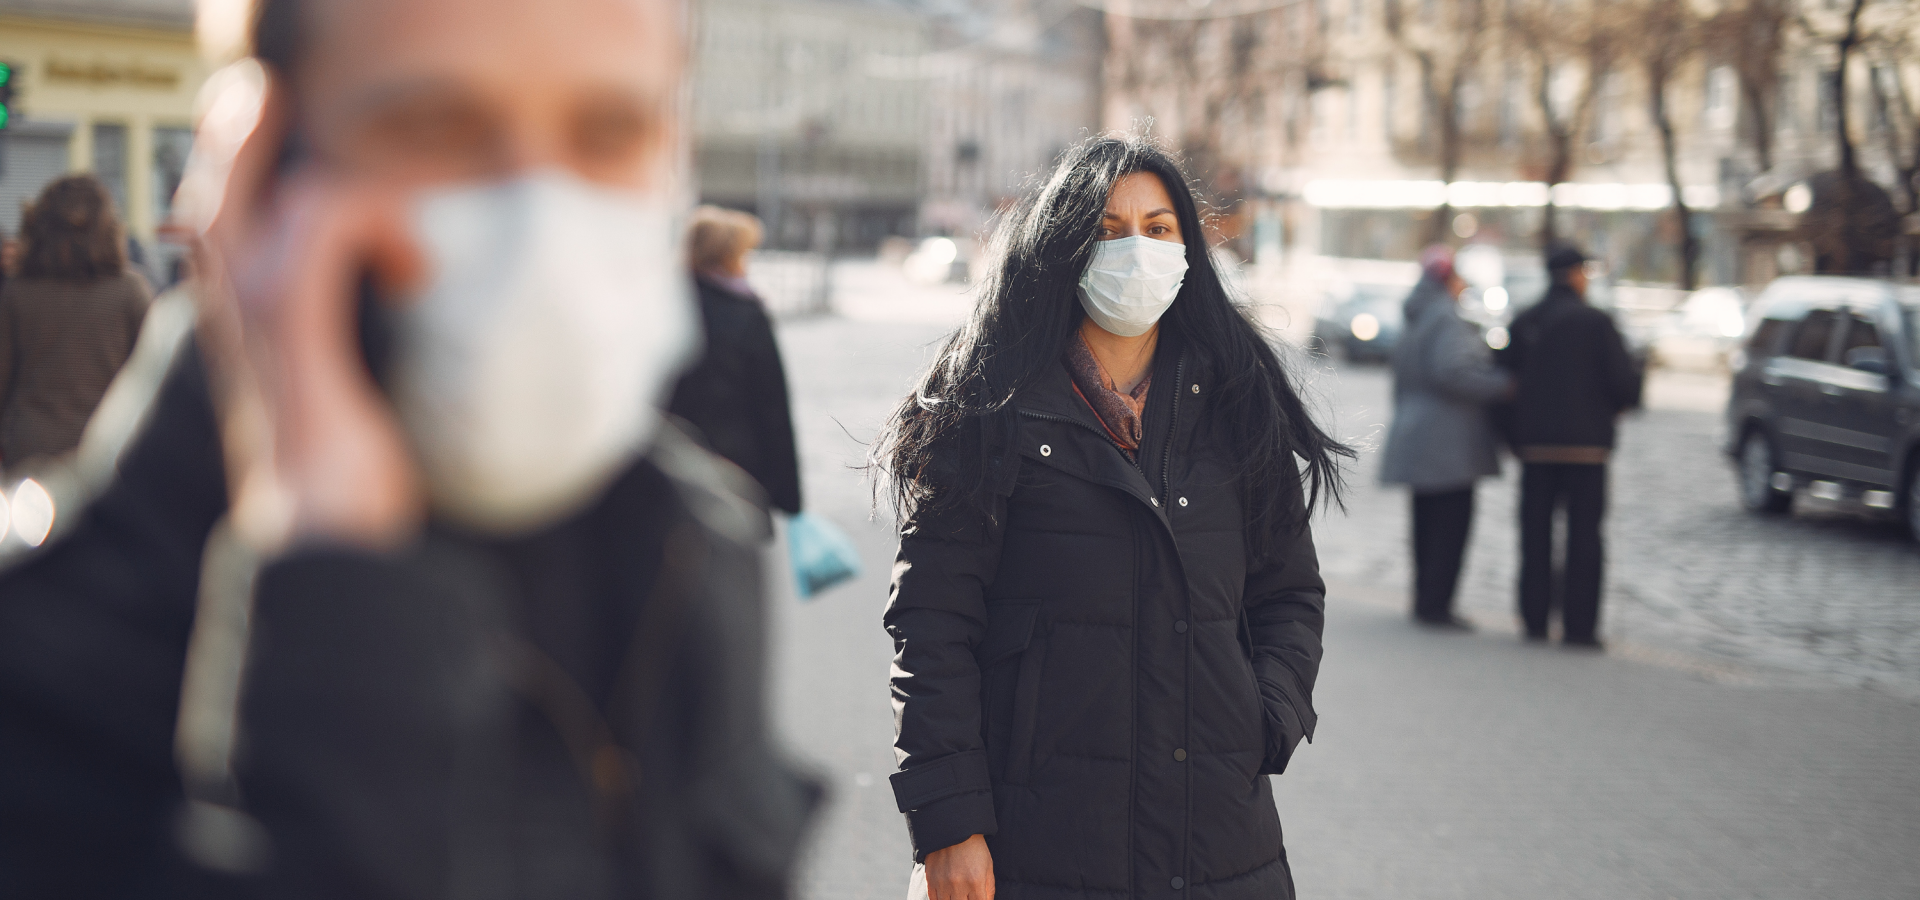 A woman walks down a city sidewalk wearing a face mask and a black coat.